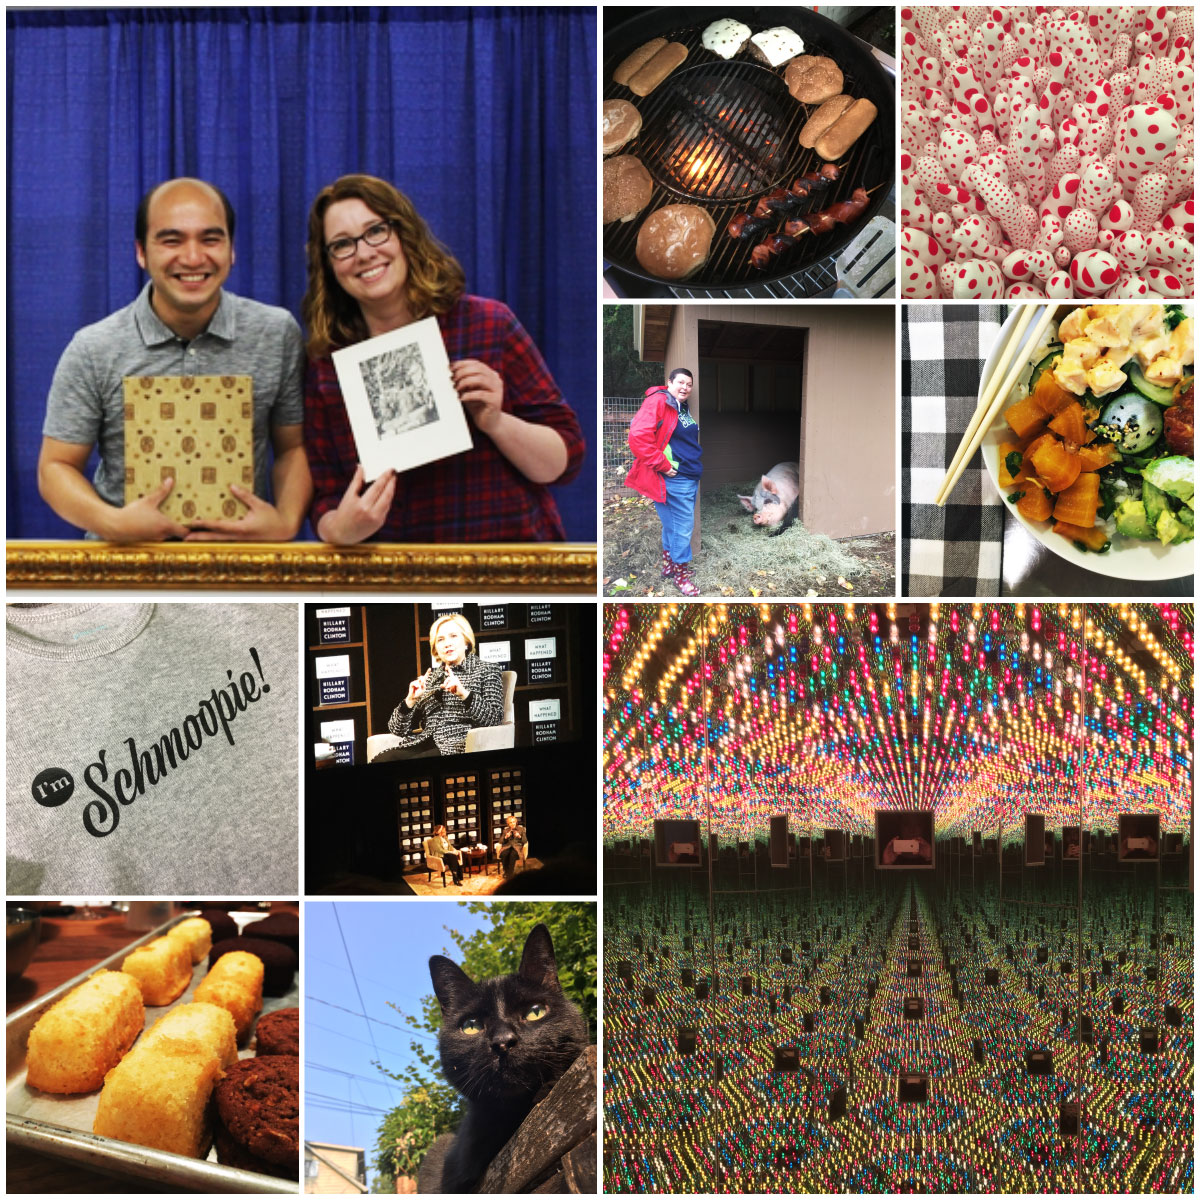 Photos from Antiques Roadshow, Kusama exhibit, cookies classes, and other outings